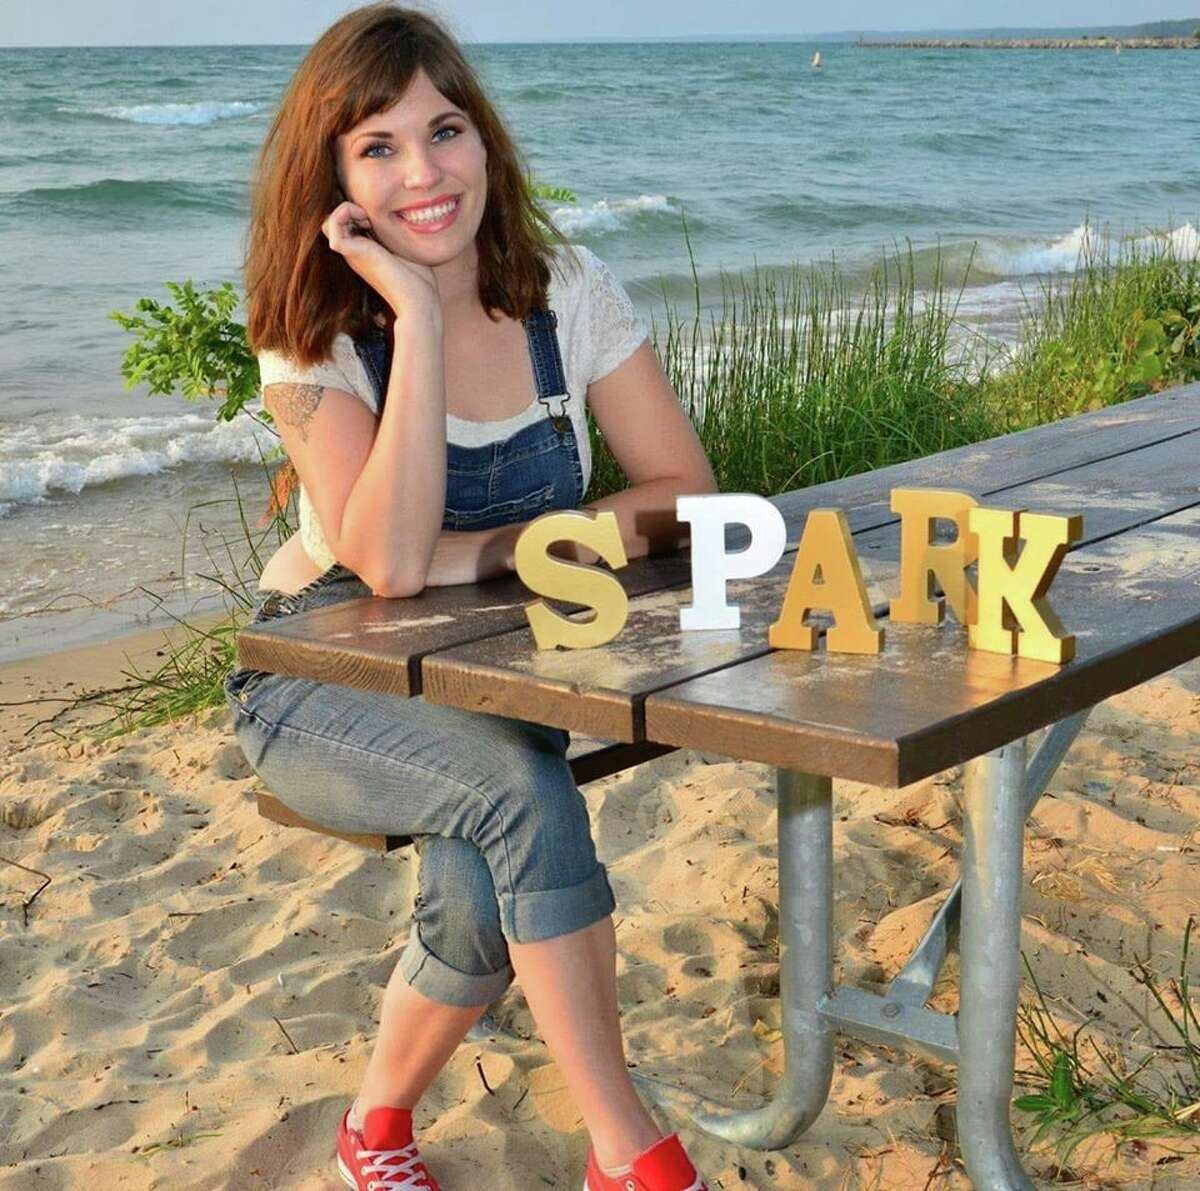 Abagail McKiernan, founder of Traverse City nonprofit Spark in the Dark, is looking to increase the organization's reach into Manistee and Benzie counties.